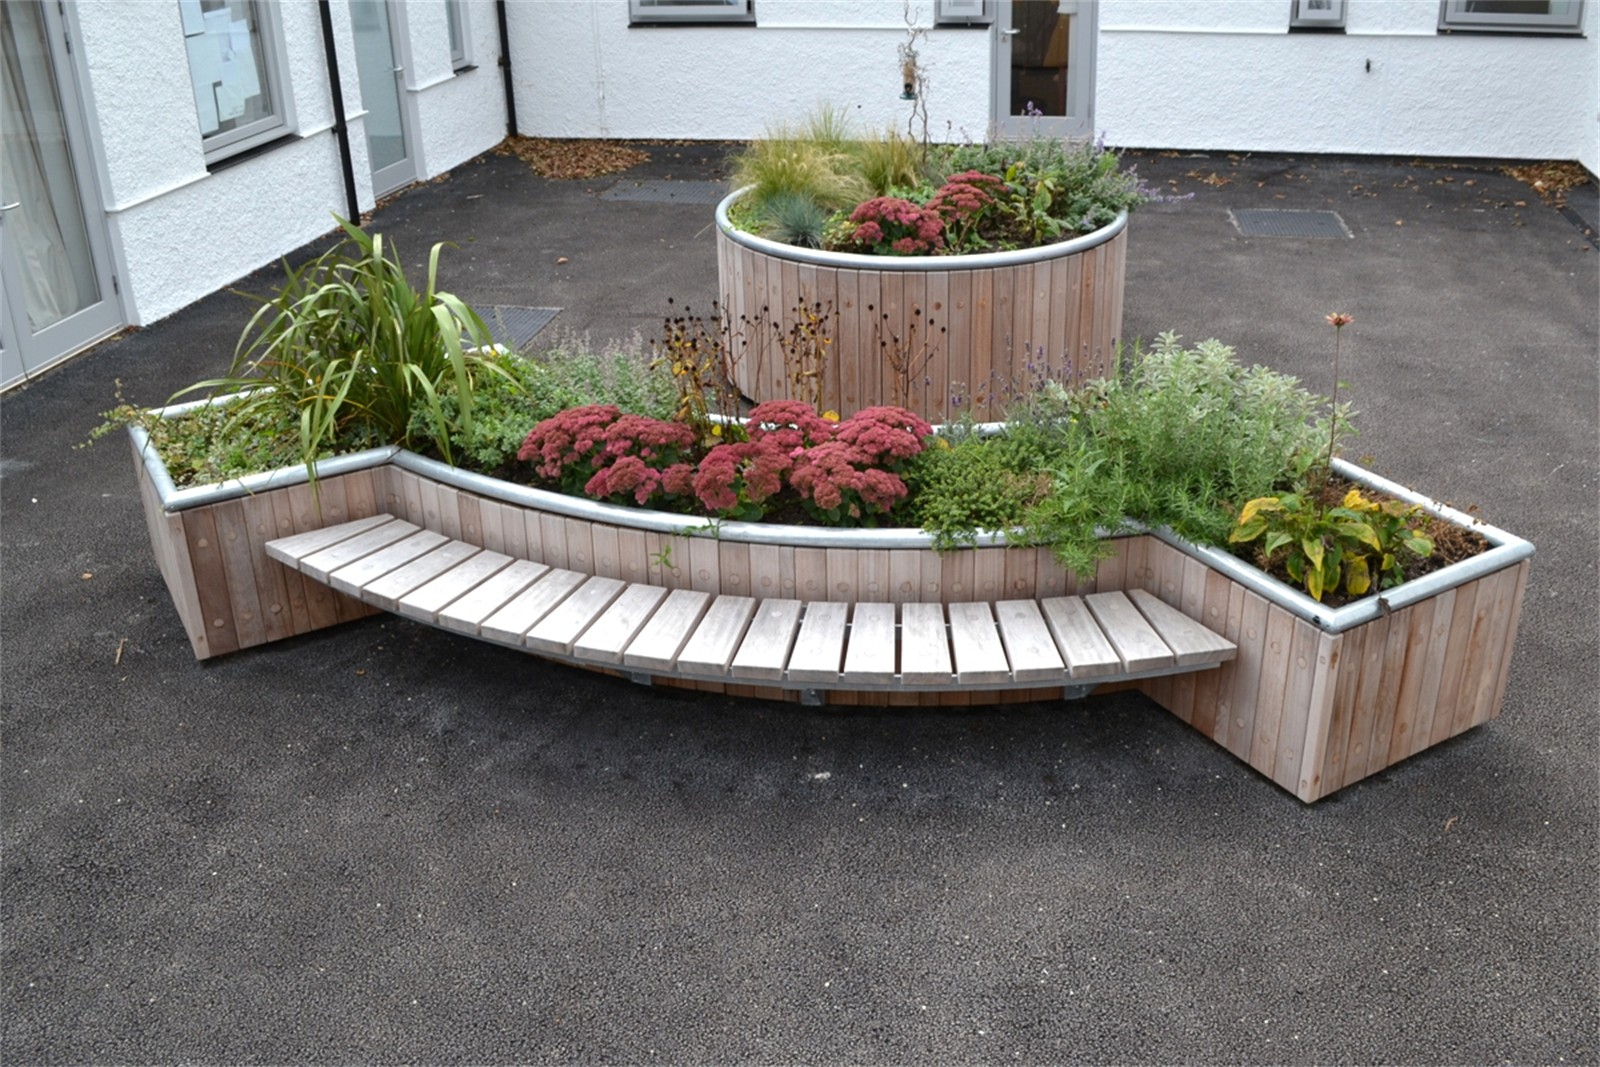 47p09 - Castleton curved planter with Spalding bench